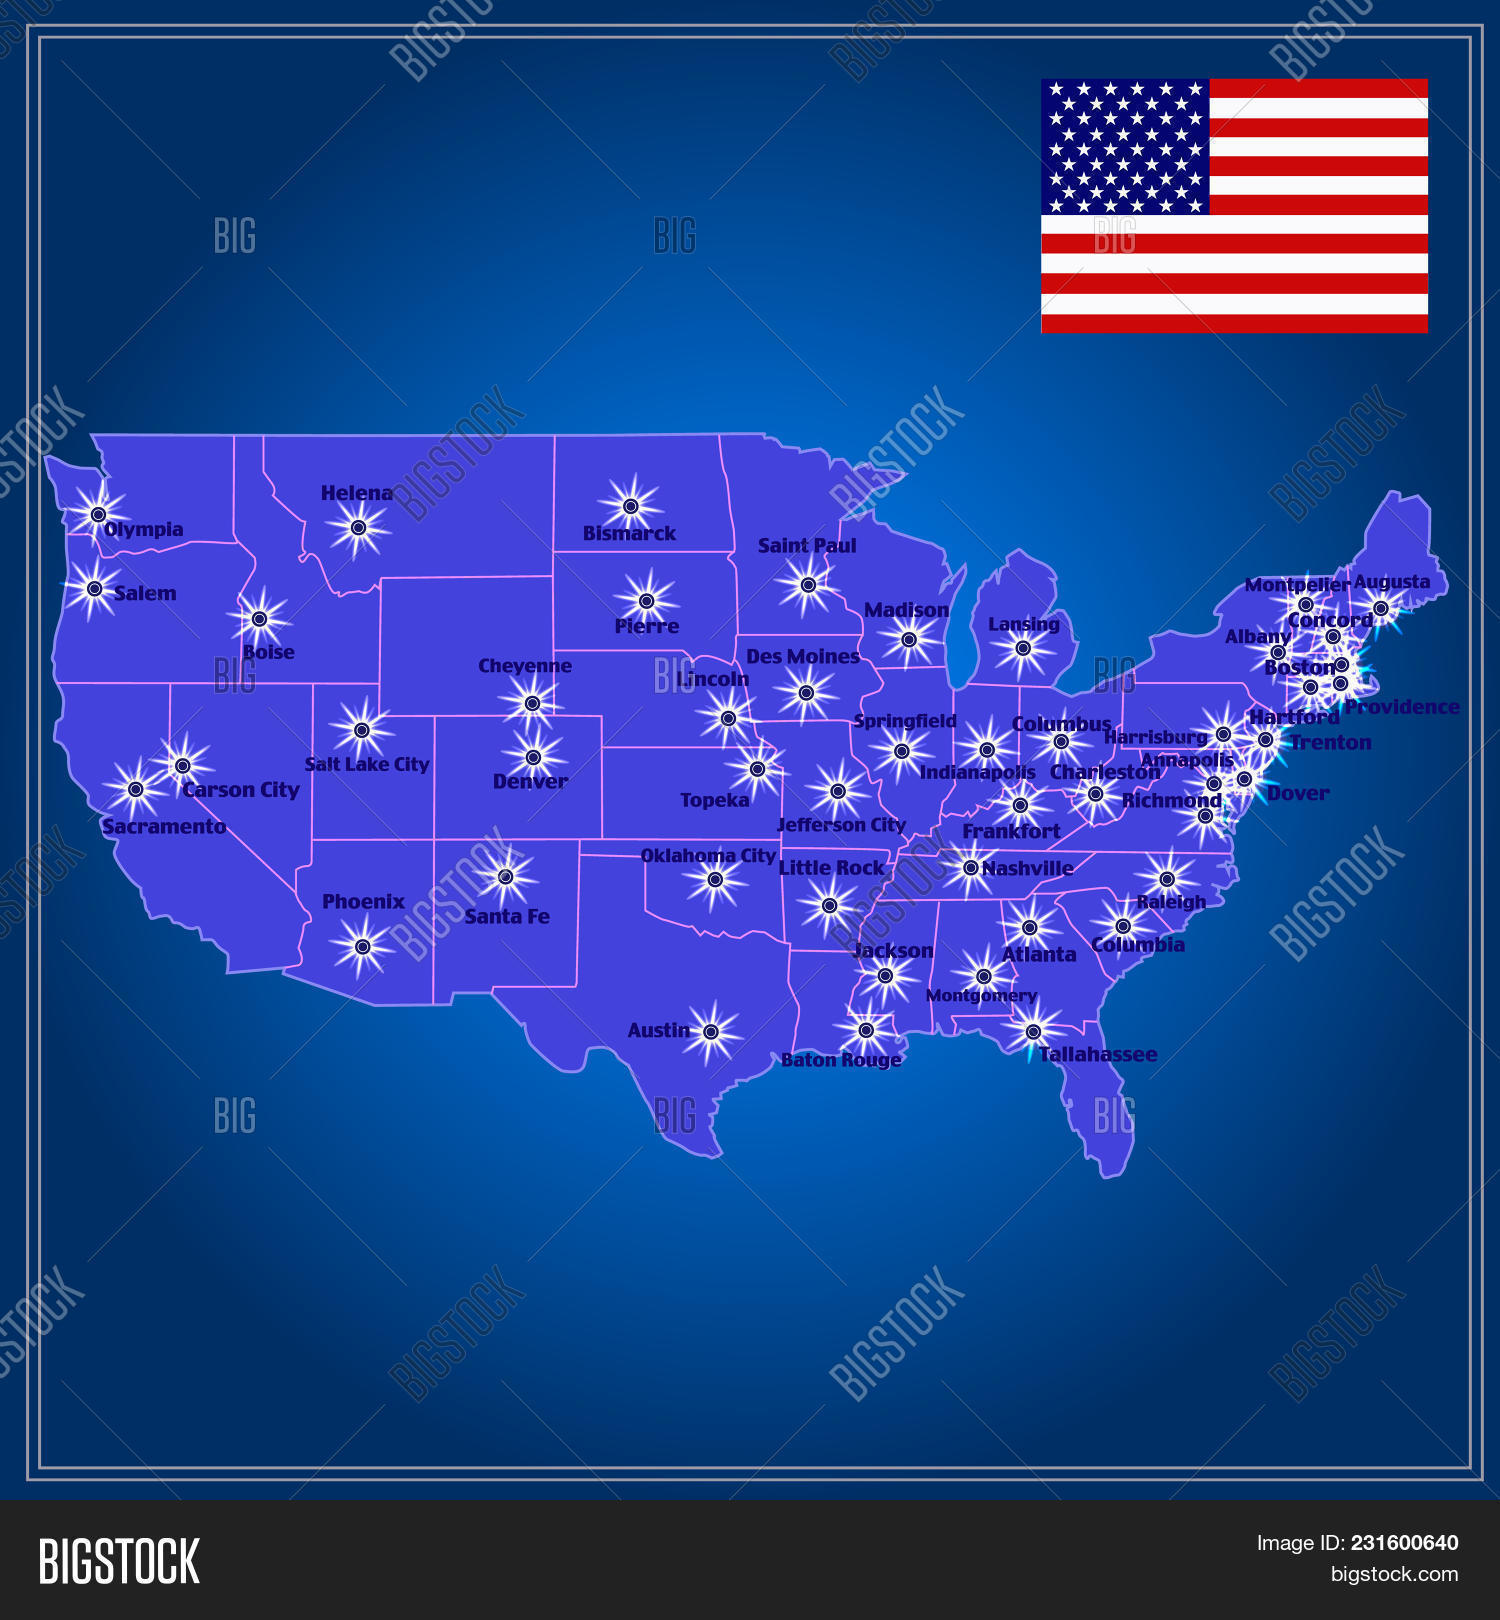 abstract,alabama,america,american,art,background,border,boston,california,cartography,city,color,colorado,communication,connecticut,design,direction,florida,geography,icon,illustration,image,indiana,infographic,isolated,kentucky,map,mexico,michigan,nation,nevada,new,north,of,ohio,outline,regions,set,signs,state,symbols,texas,transportation,travel,united,us,usa,washington,white,york